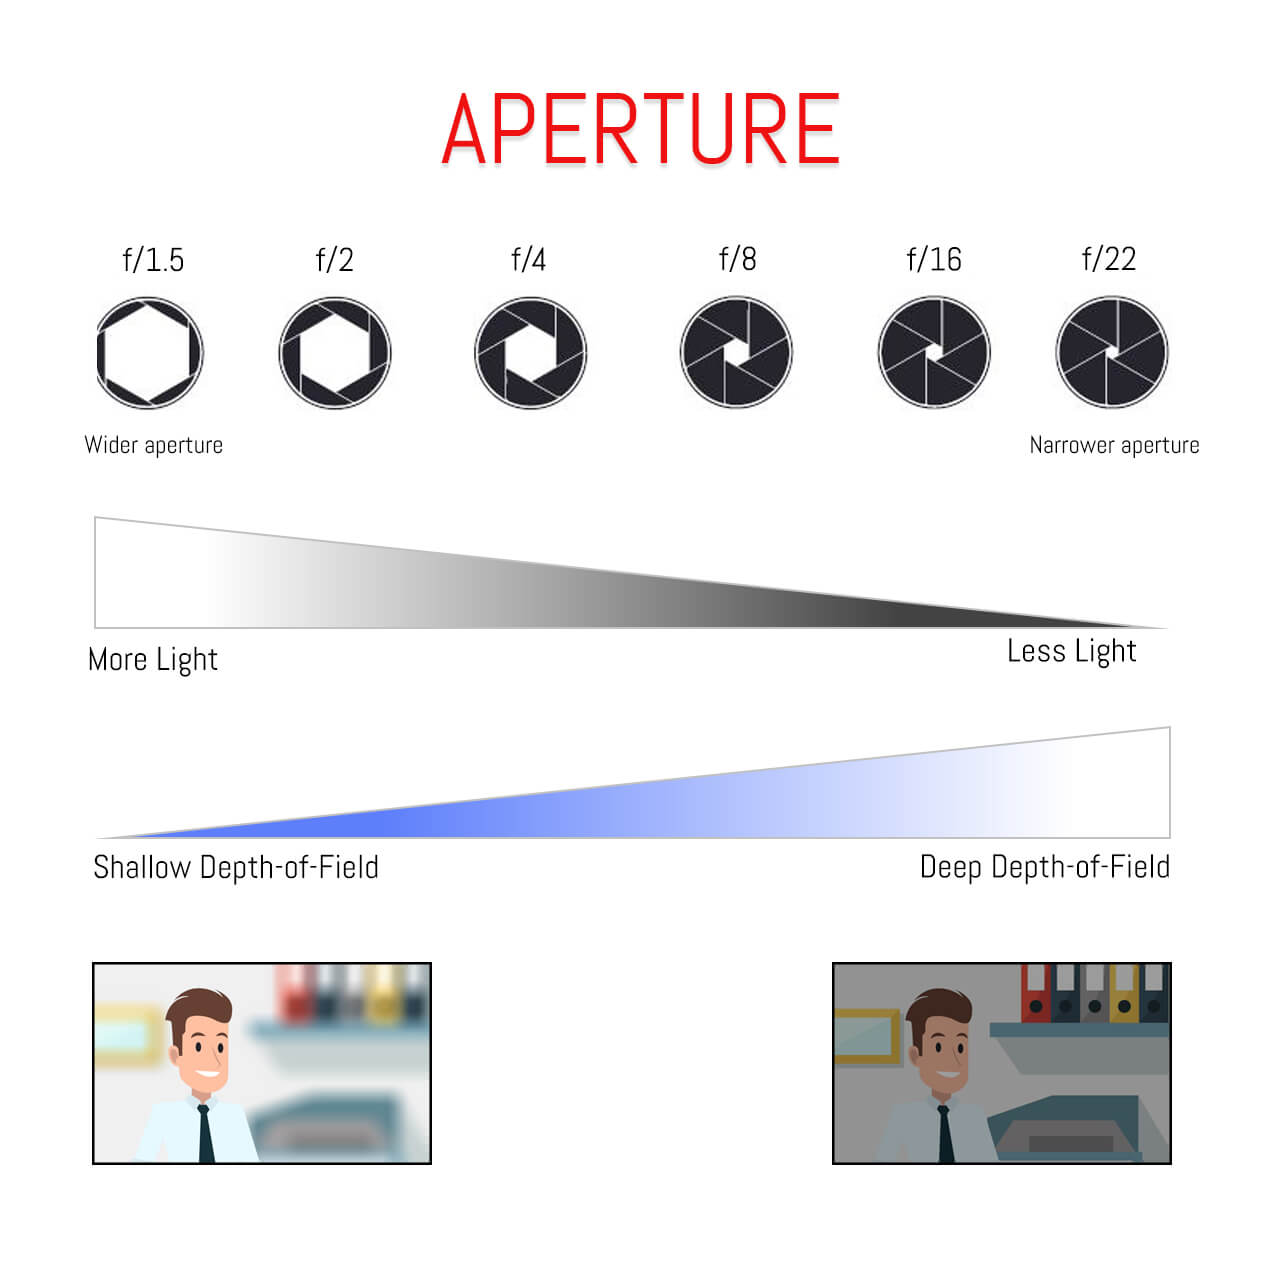 illustration of how aperture affects images